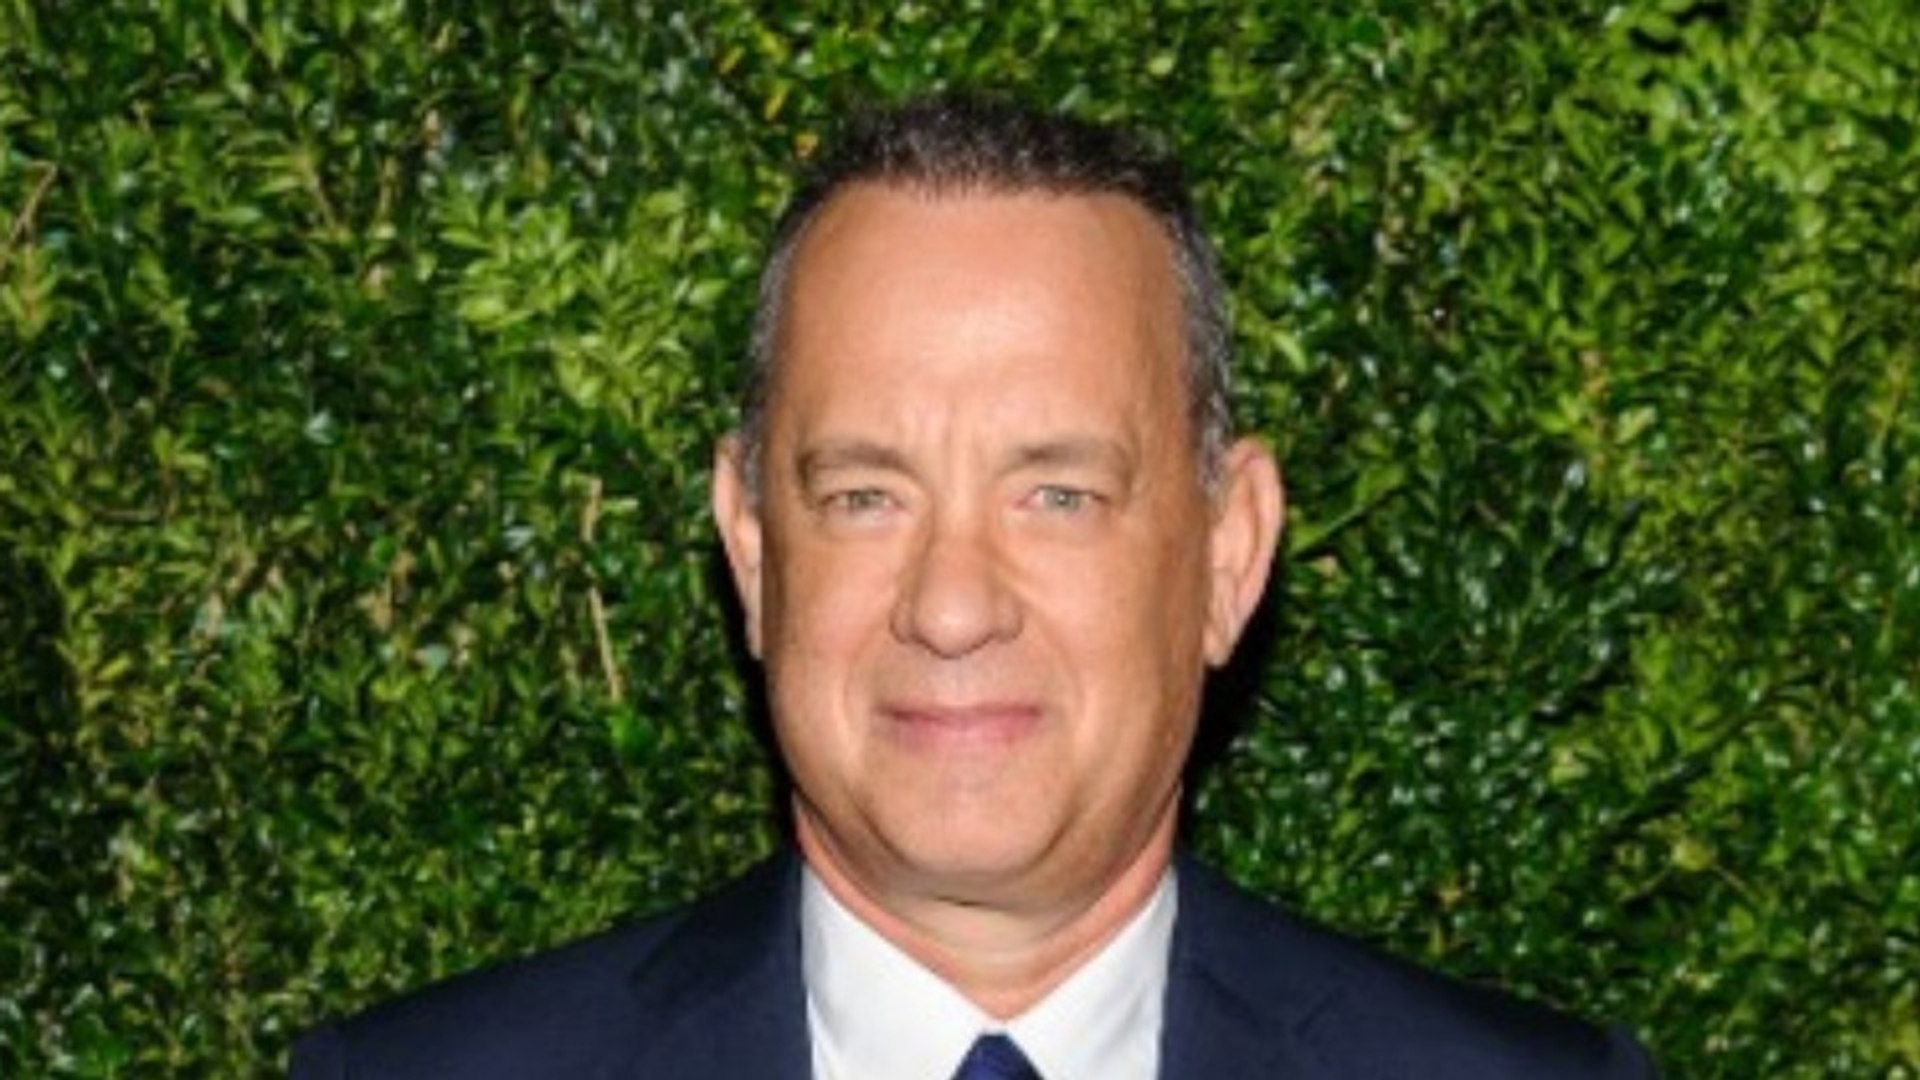 Tom Hanks to Debut Collection of Short Stories in October